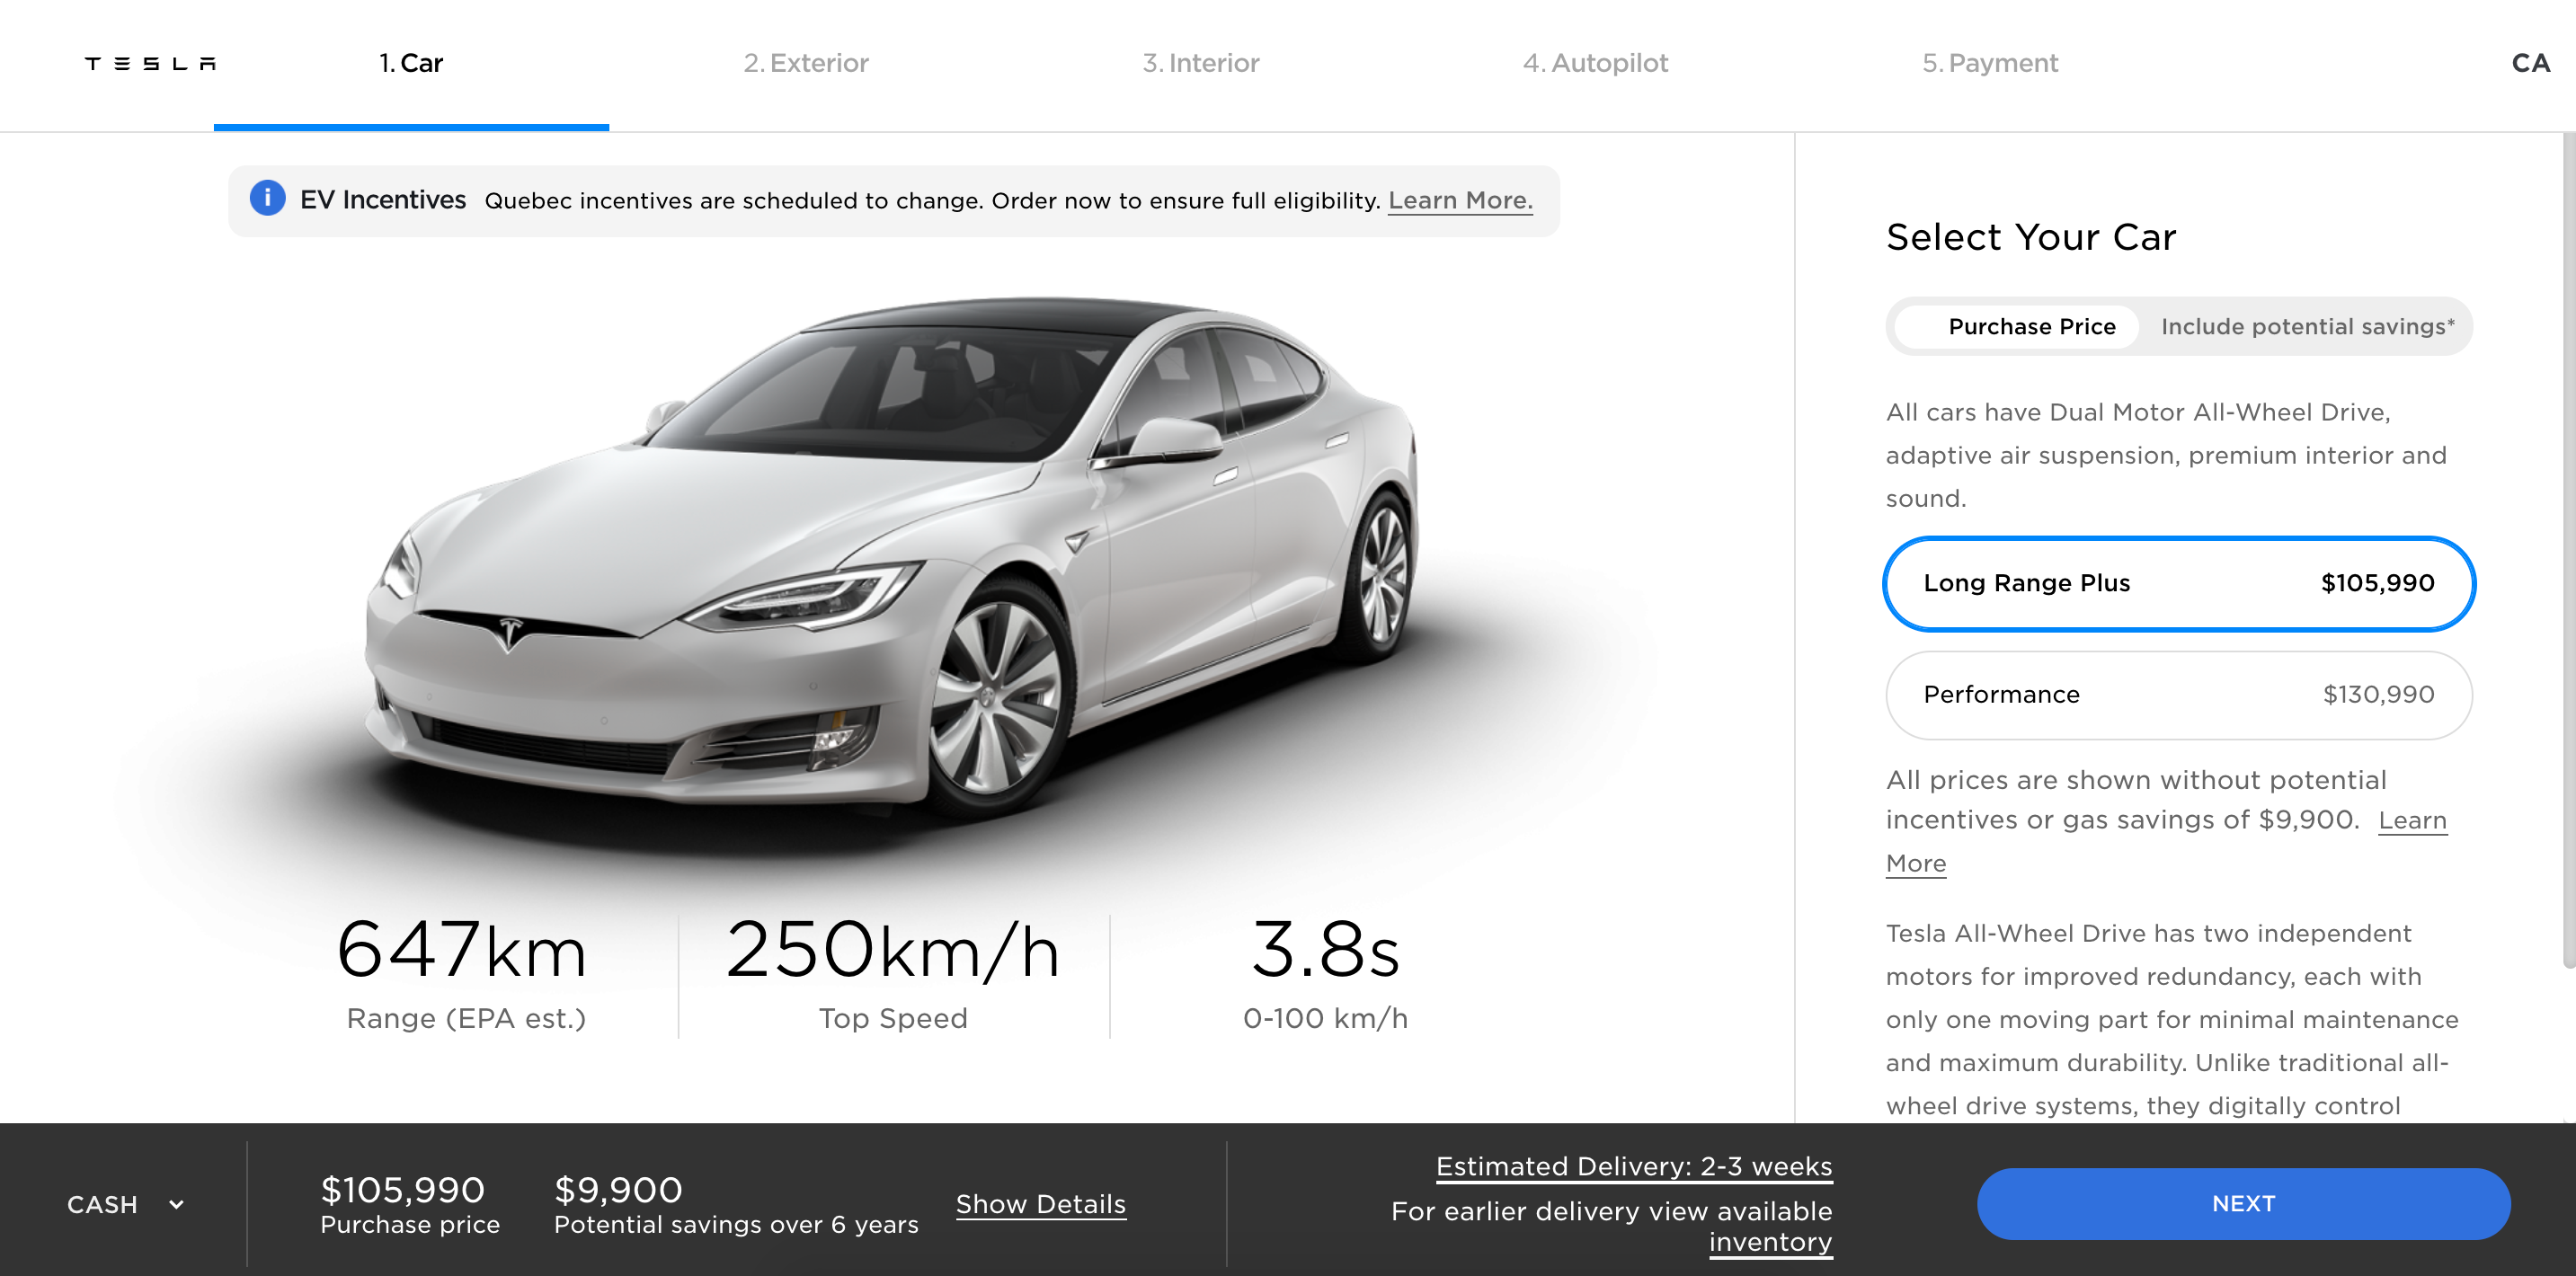 Tesla Model S LR Plus with new range